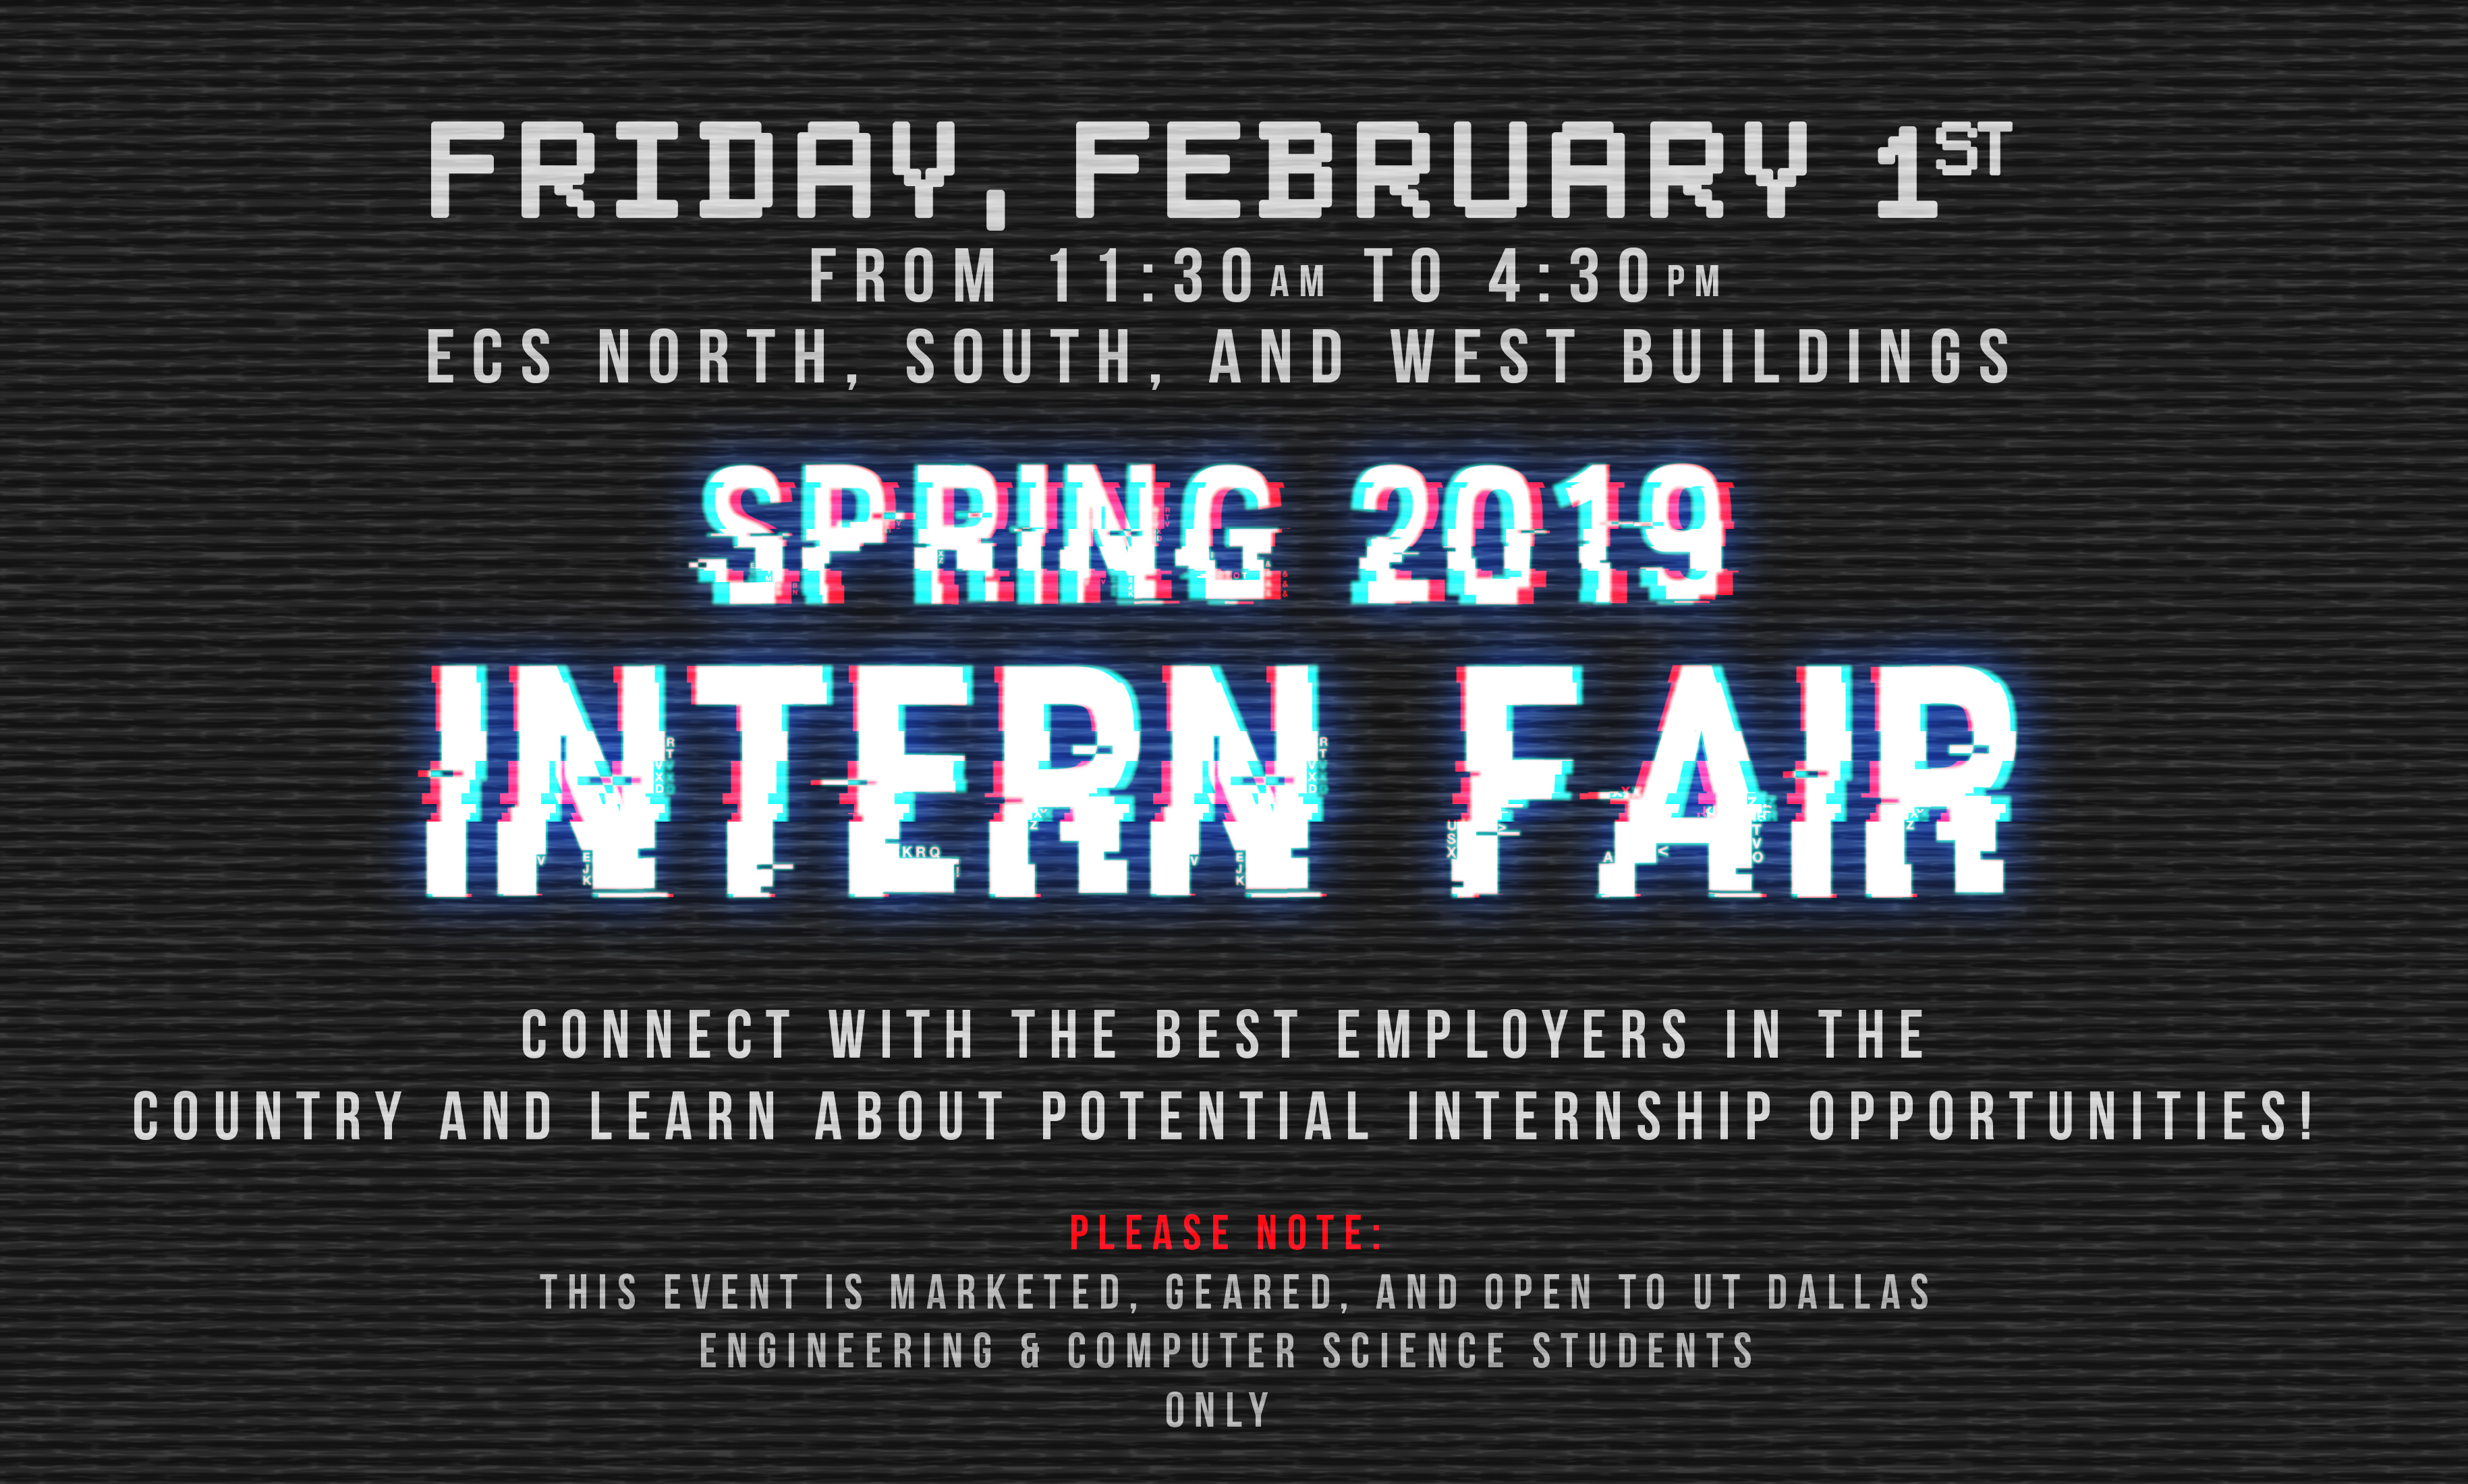 Spring 2019 INTERN FAIR @ ECS South, North, West